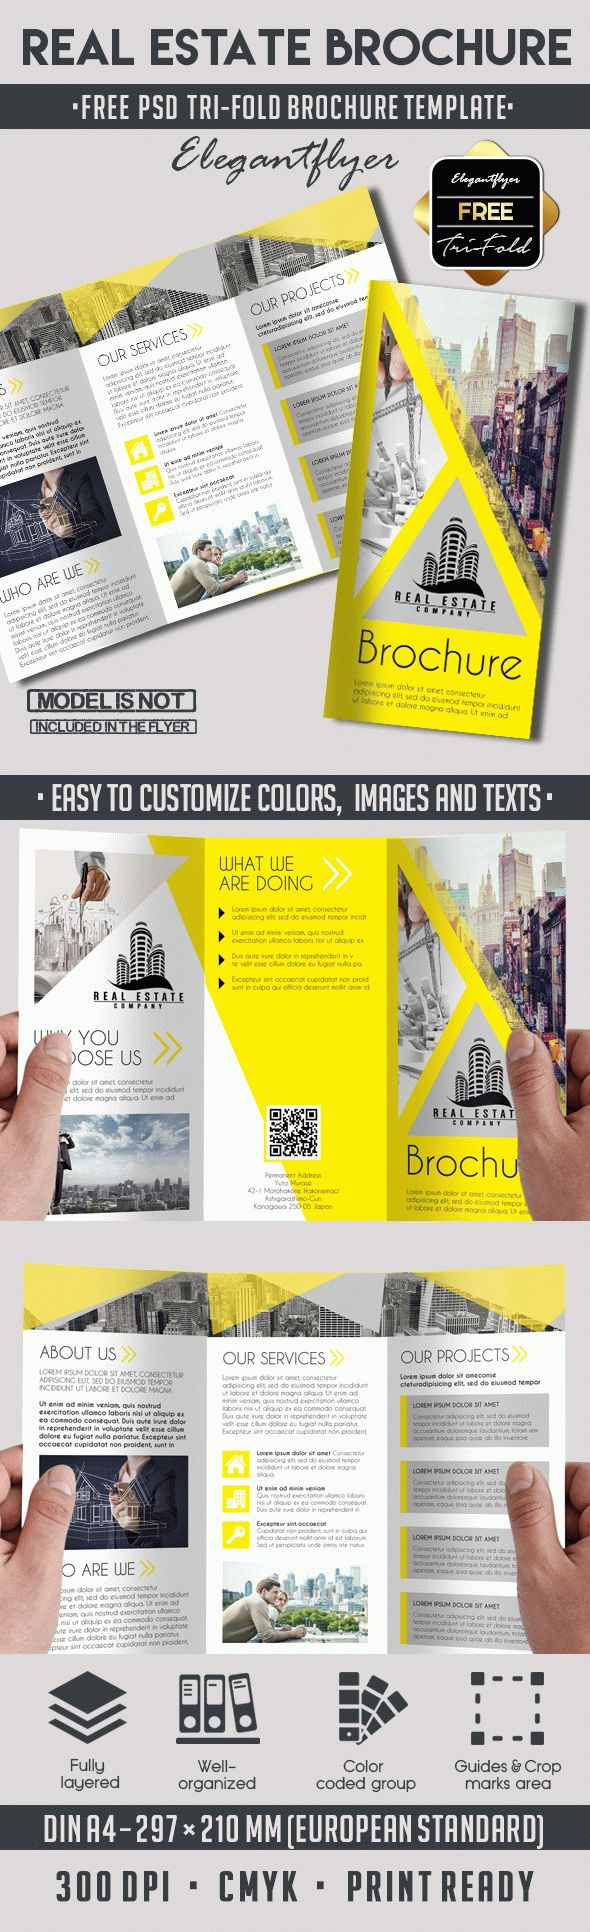 Real estate free tri fold psd brochure template by for Tri fold brochure template psd